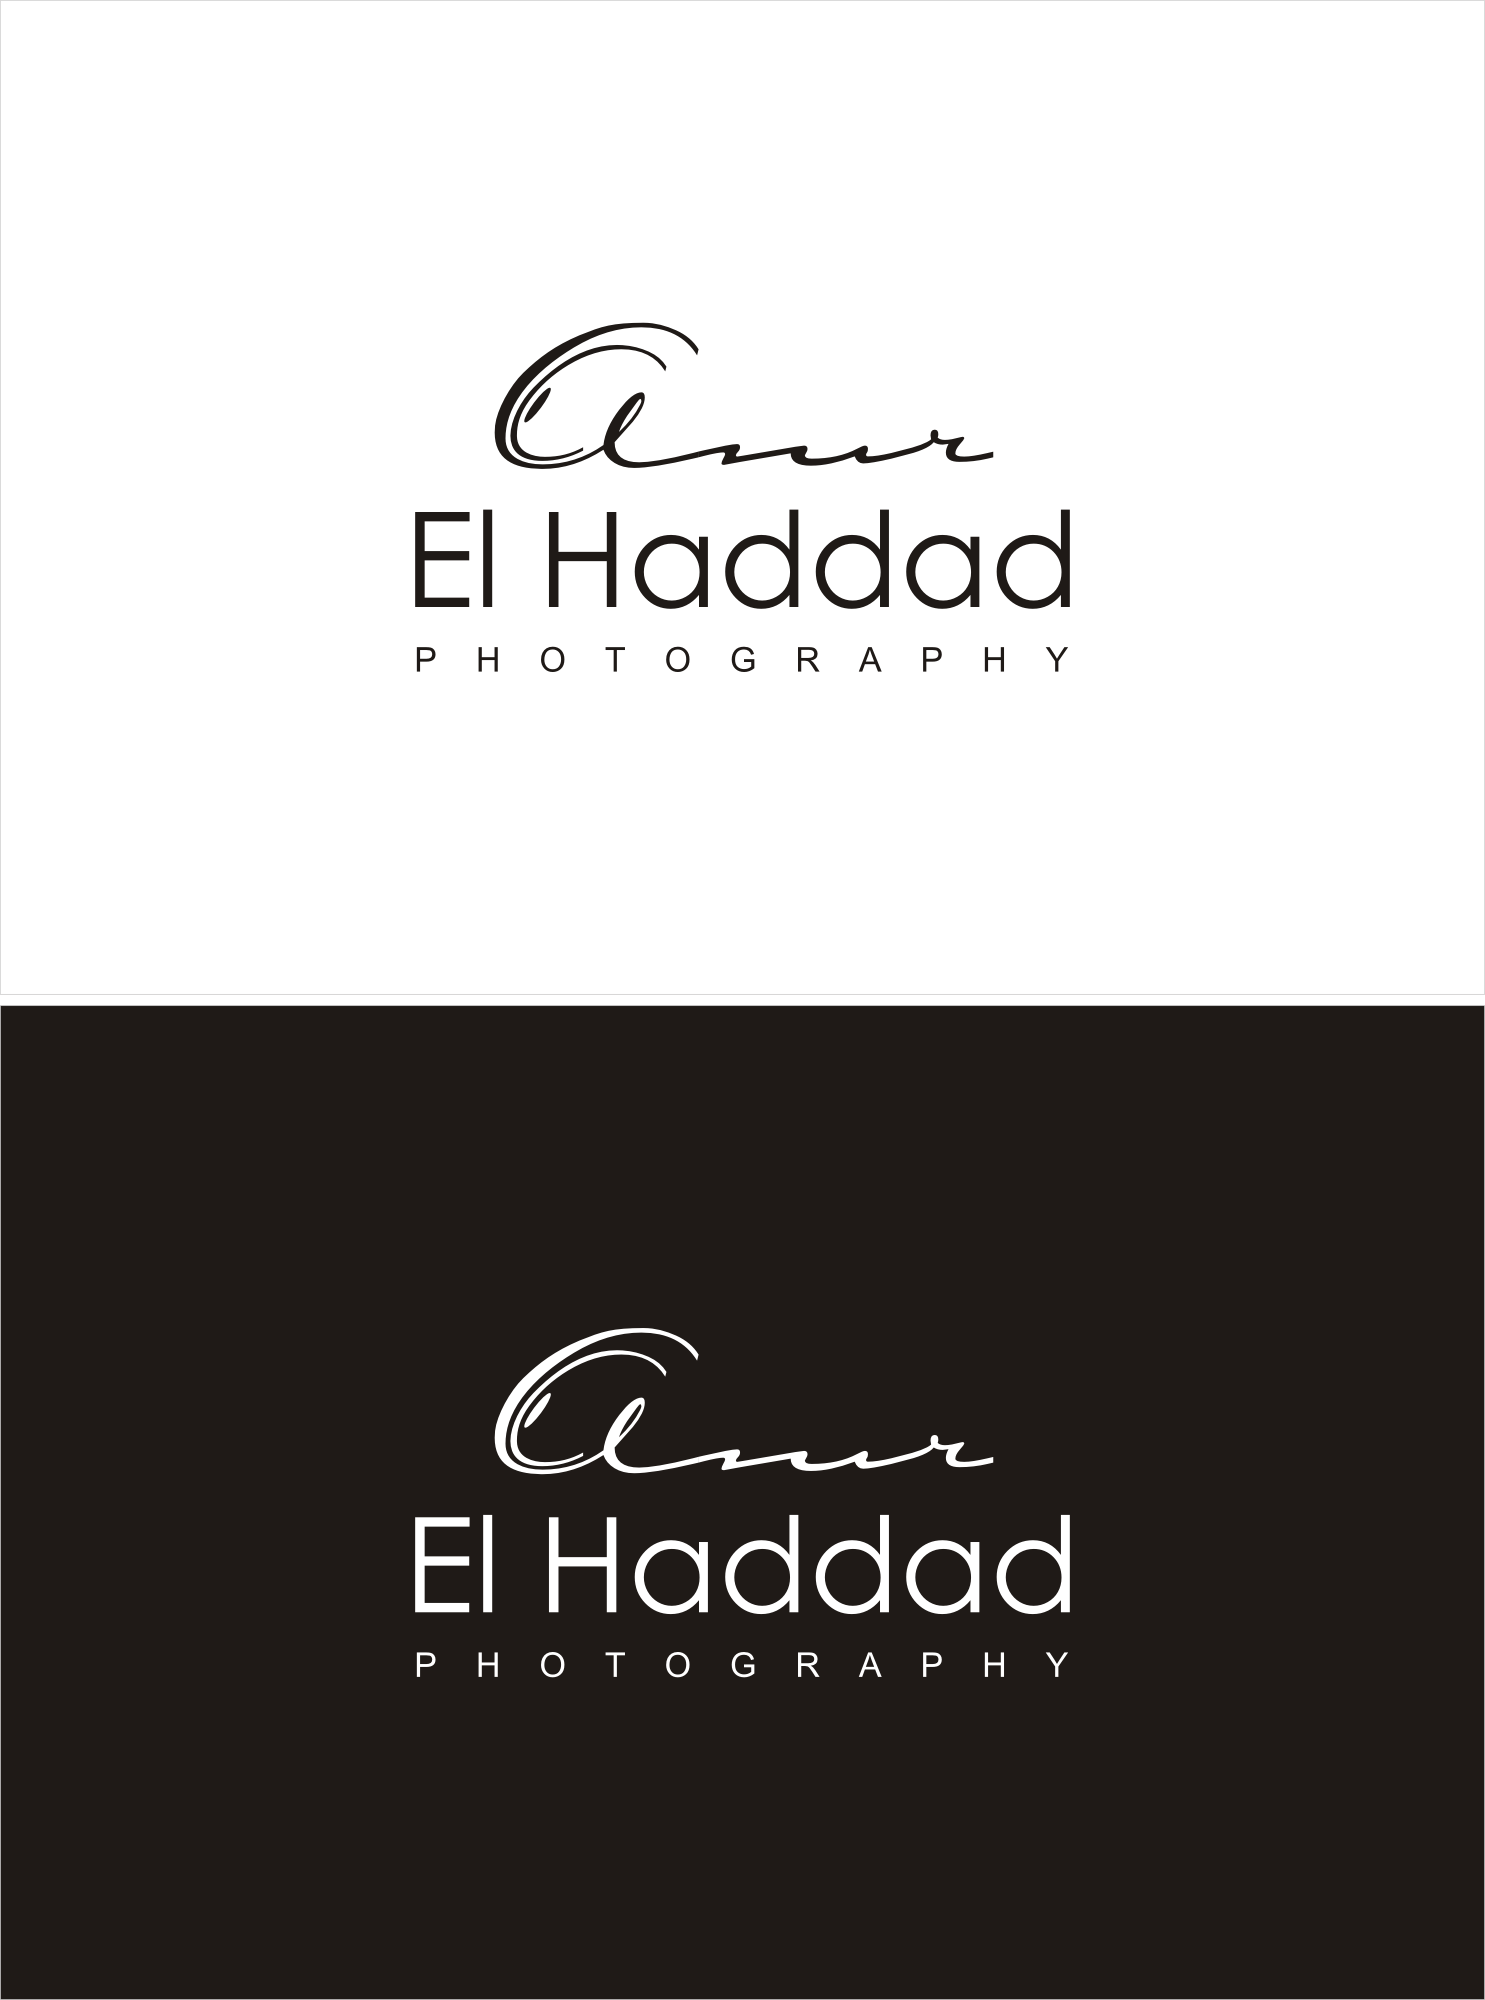 """Challenging your creativity with a new wanted logo for """"Amr El Haddad Photography Business"""""""